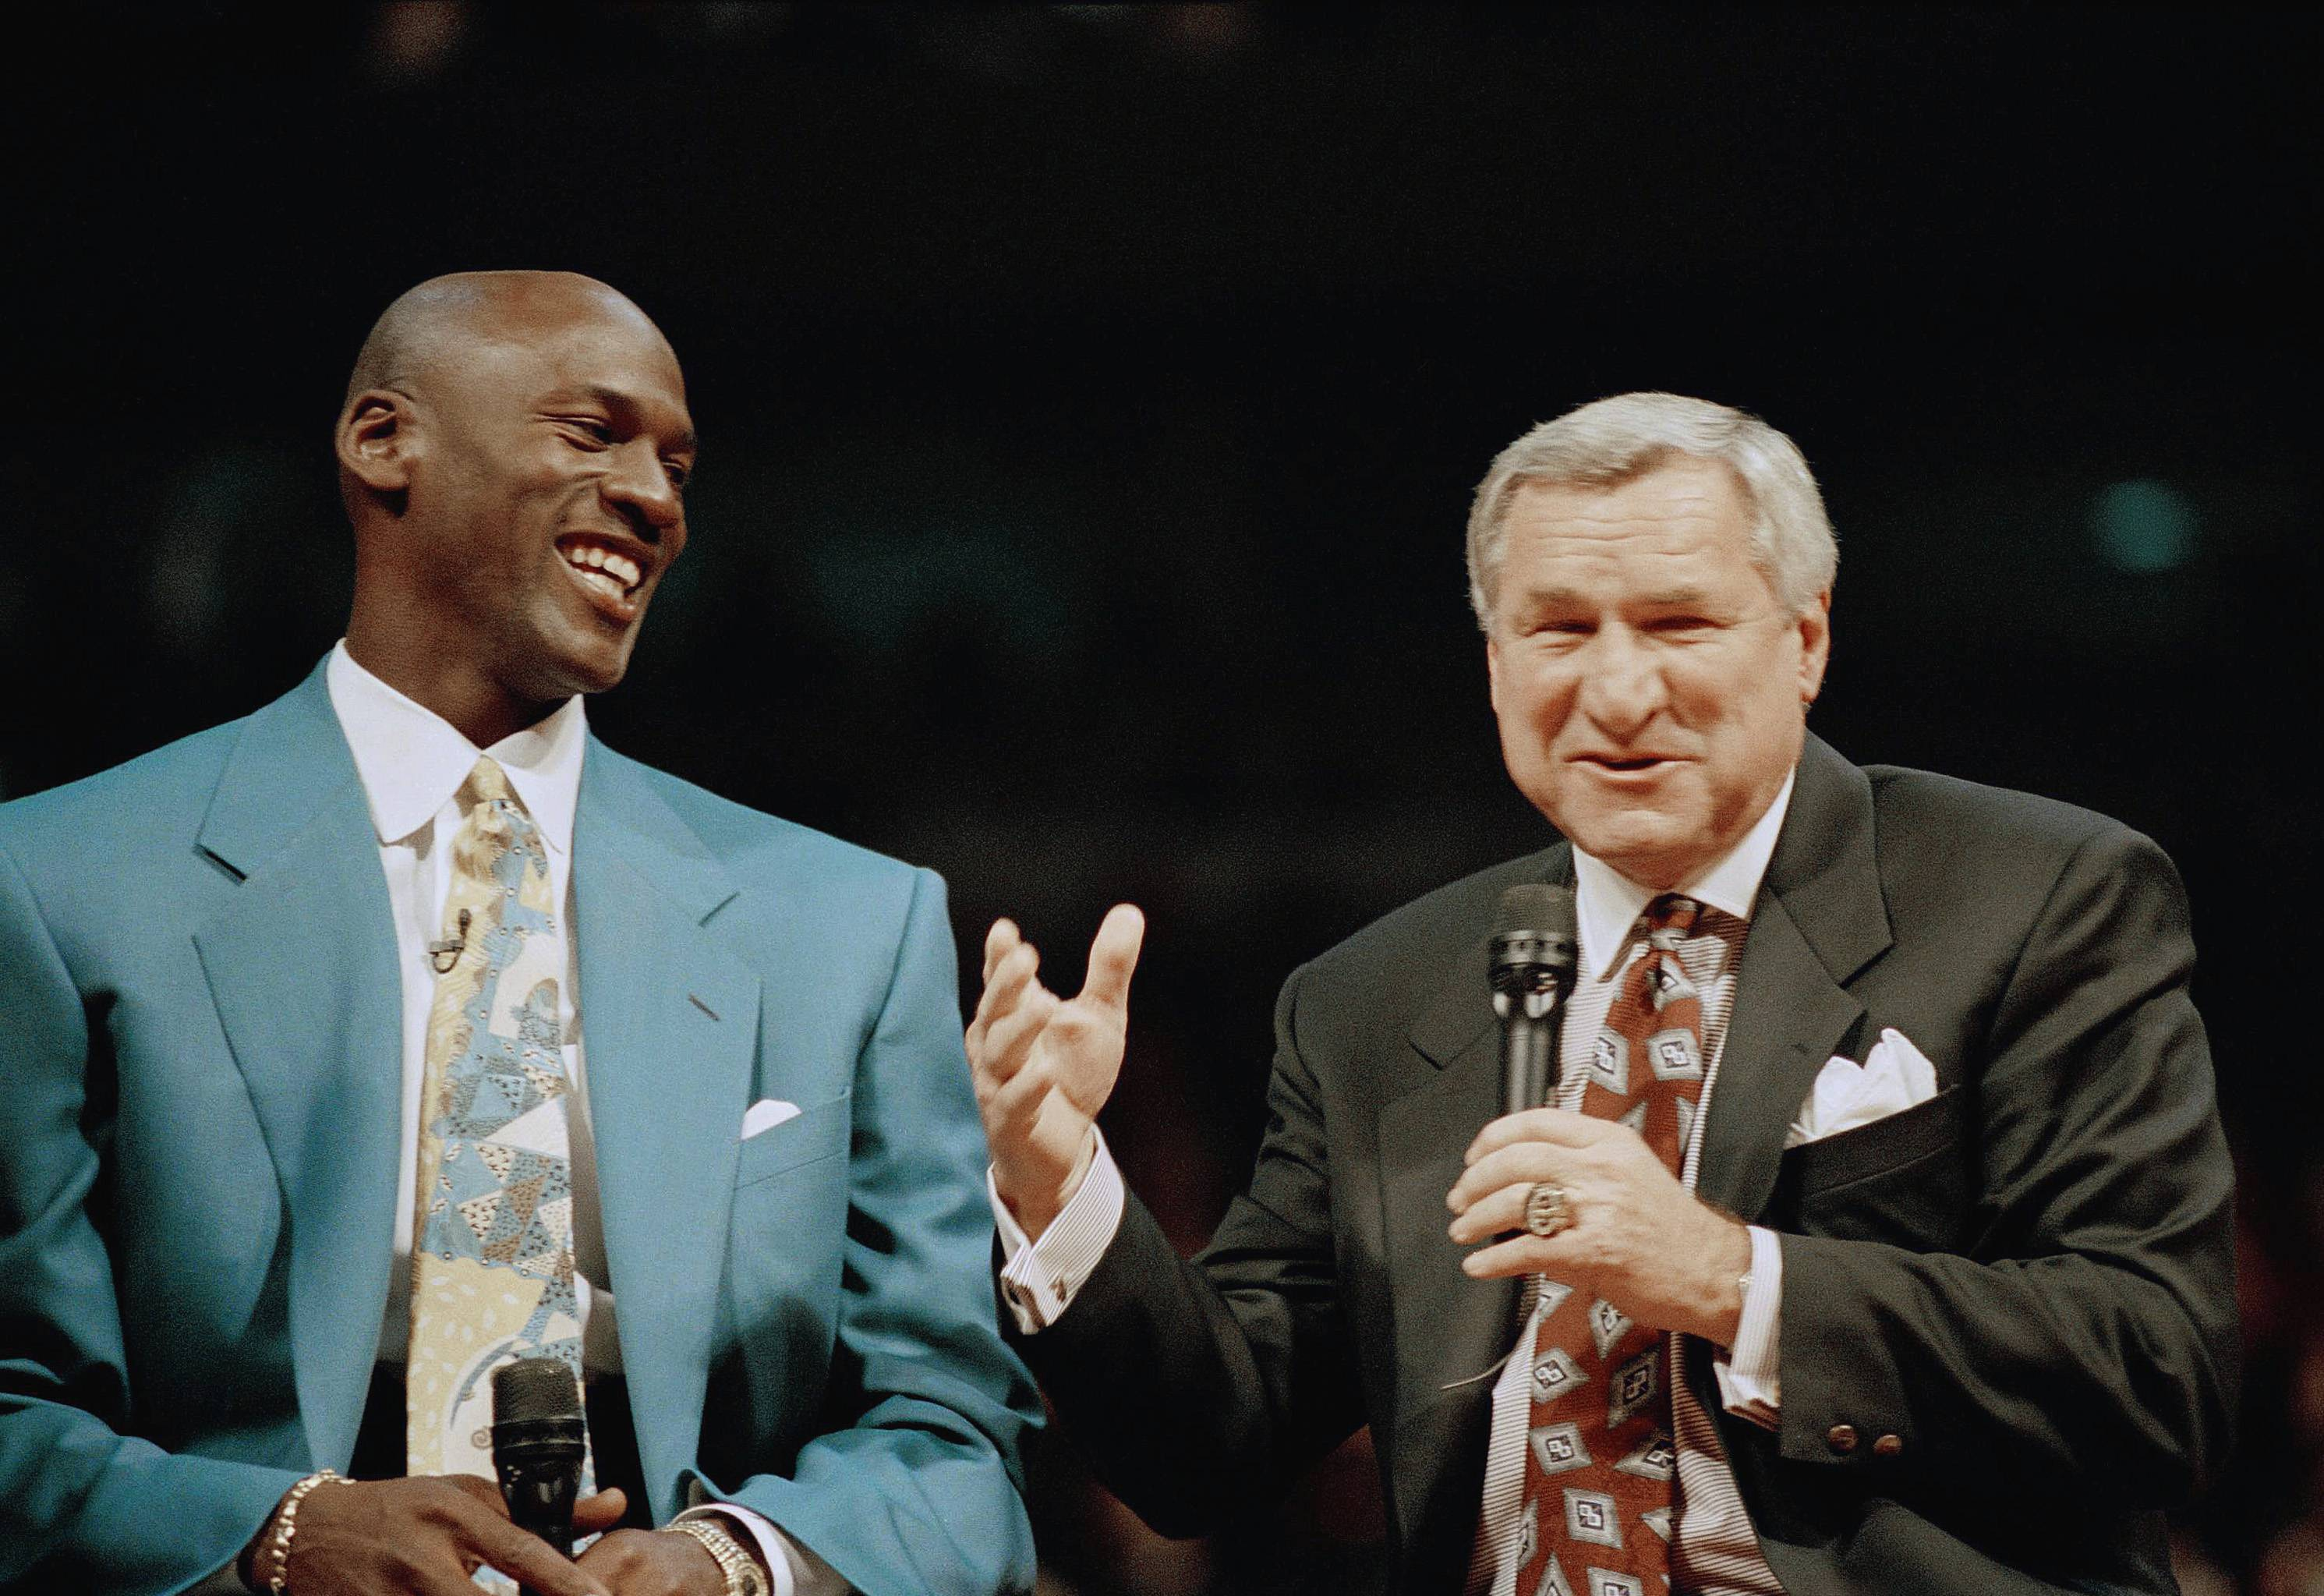 dean smith Legendary north carolina basketball coach dean smith the late north carolina basketball coach dean smith said thank you to all of his former players one last time in his will about 180 former tar heels will get $200 checks from the accountant who administers his trust the checks contain the.